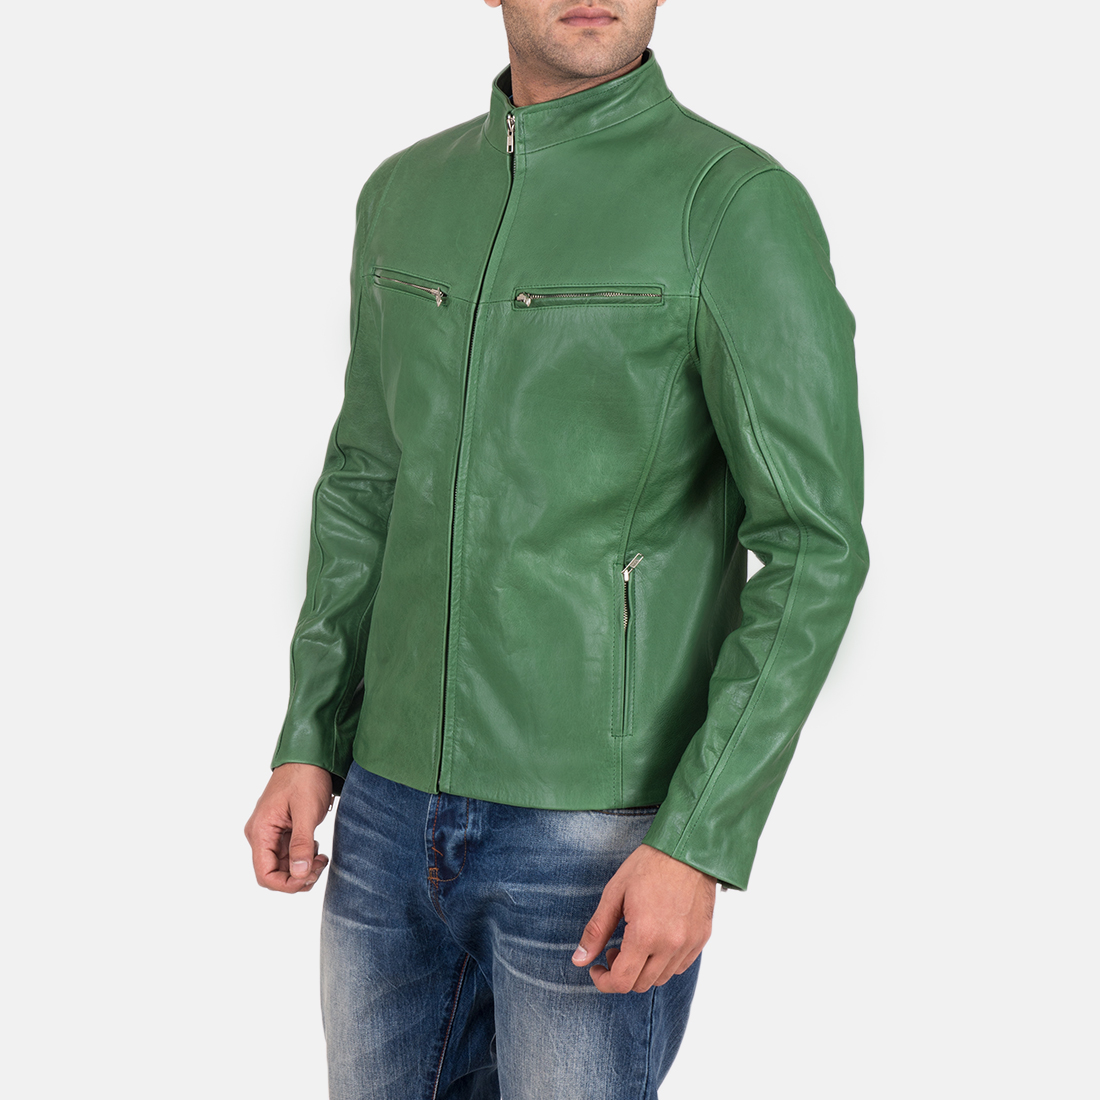 Mens Ionic Green Leather Jacket 3